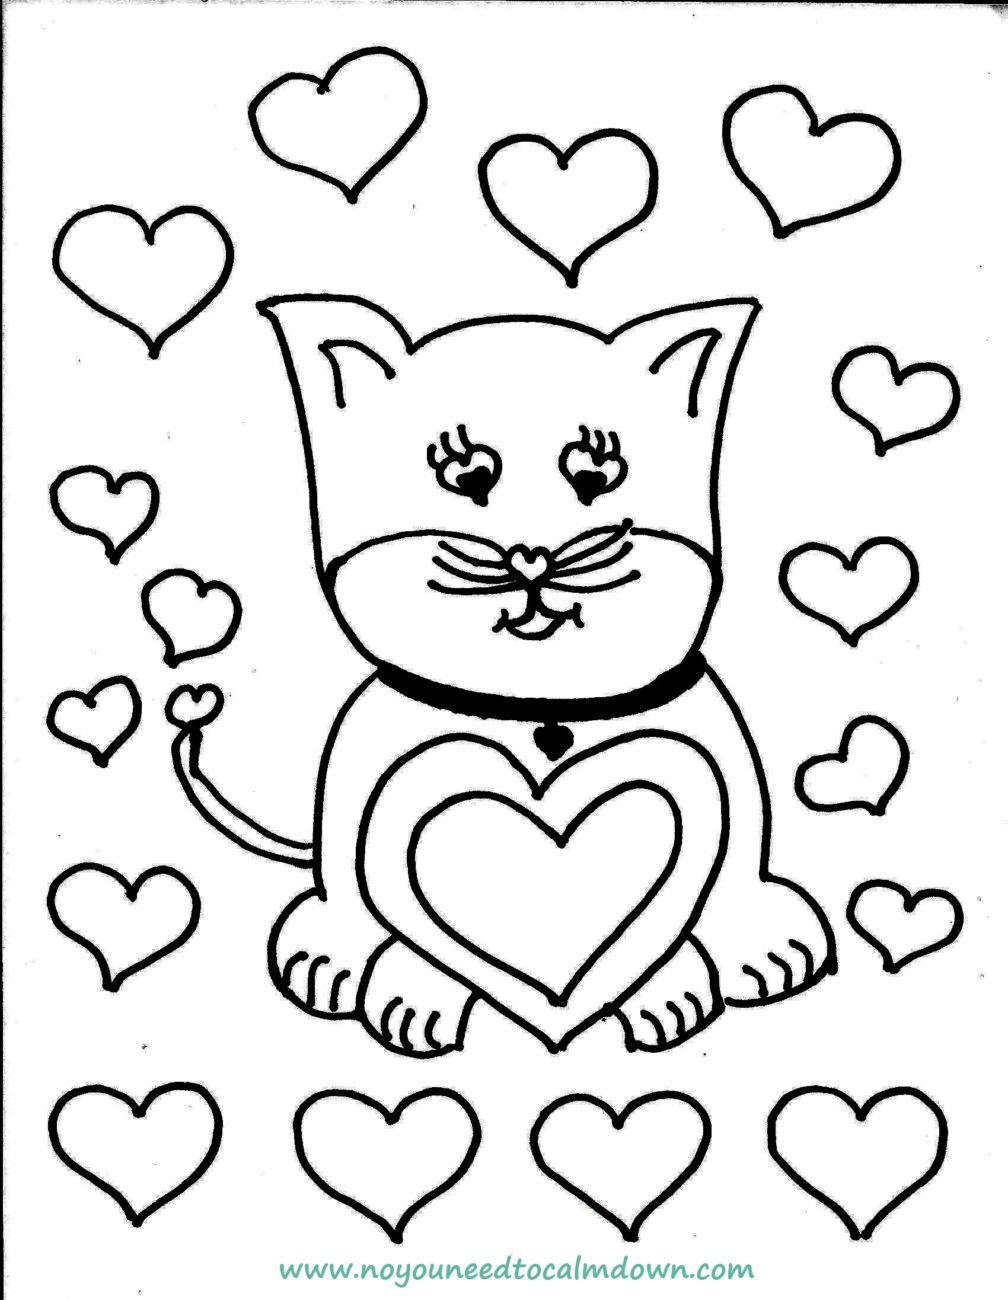 cat valentine coloring pages for kids | Cute Cat Valentine's Day Coloring Page - Free Printable ...